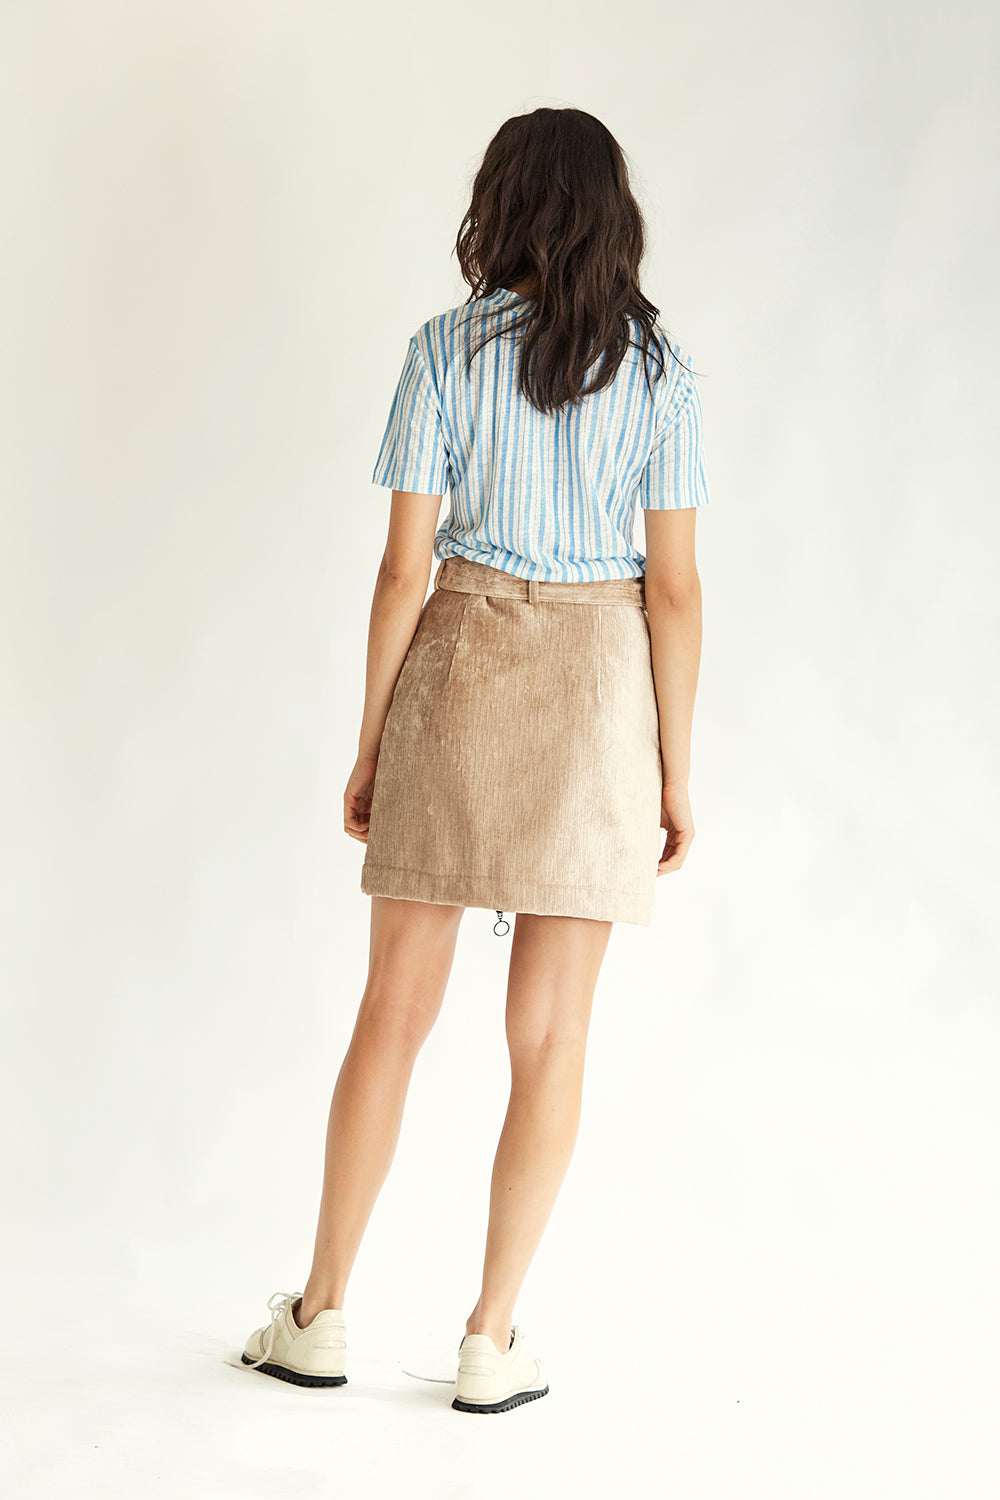 Earle Velvet Mini Skirt - Sand - Wynn Hamlyn — Shop